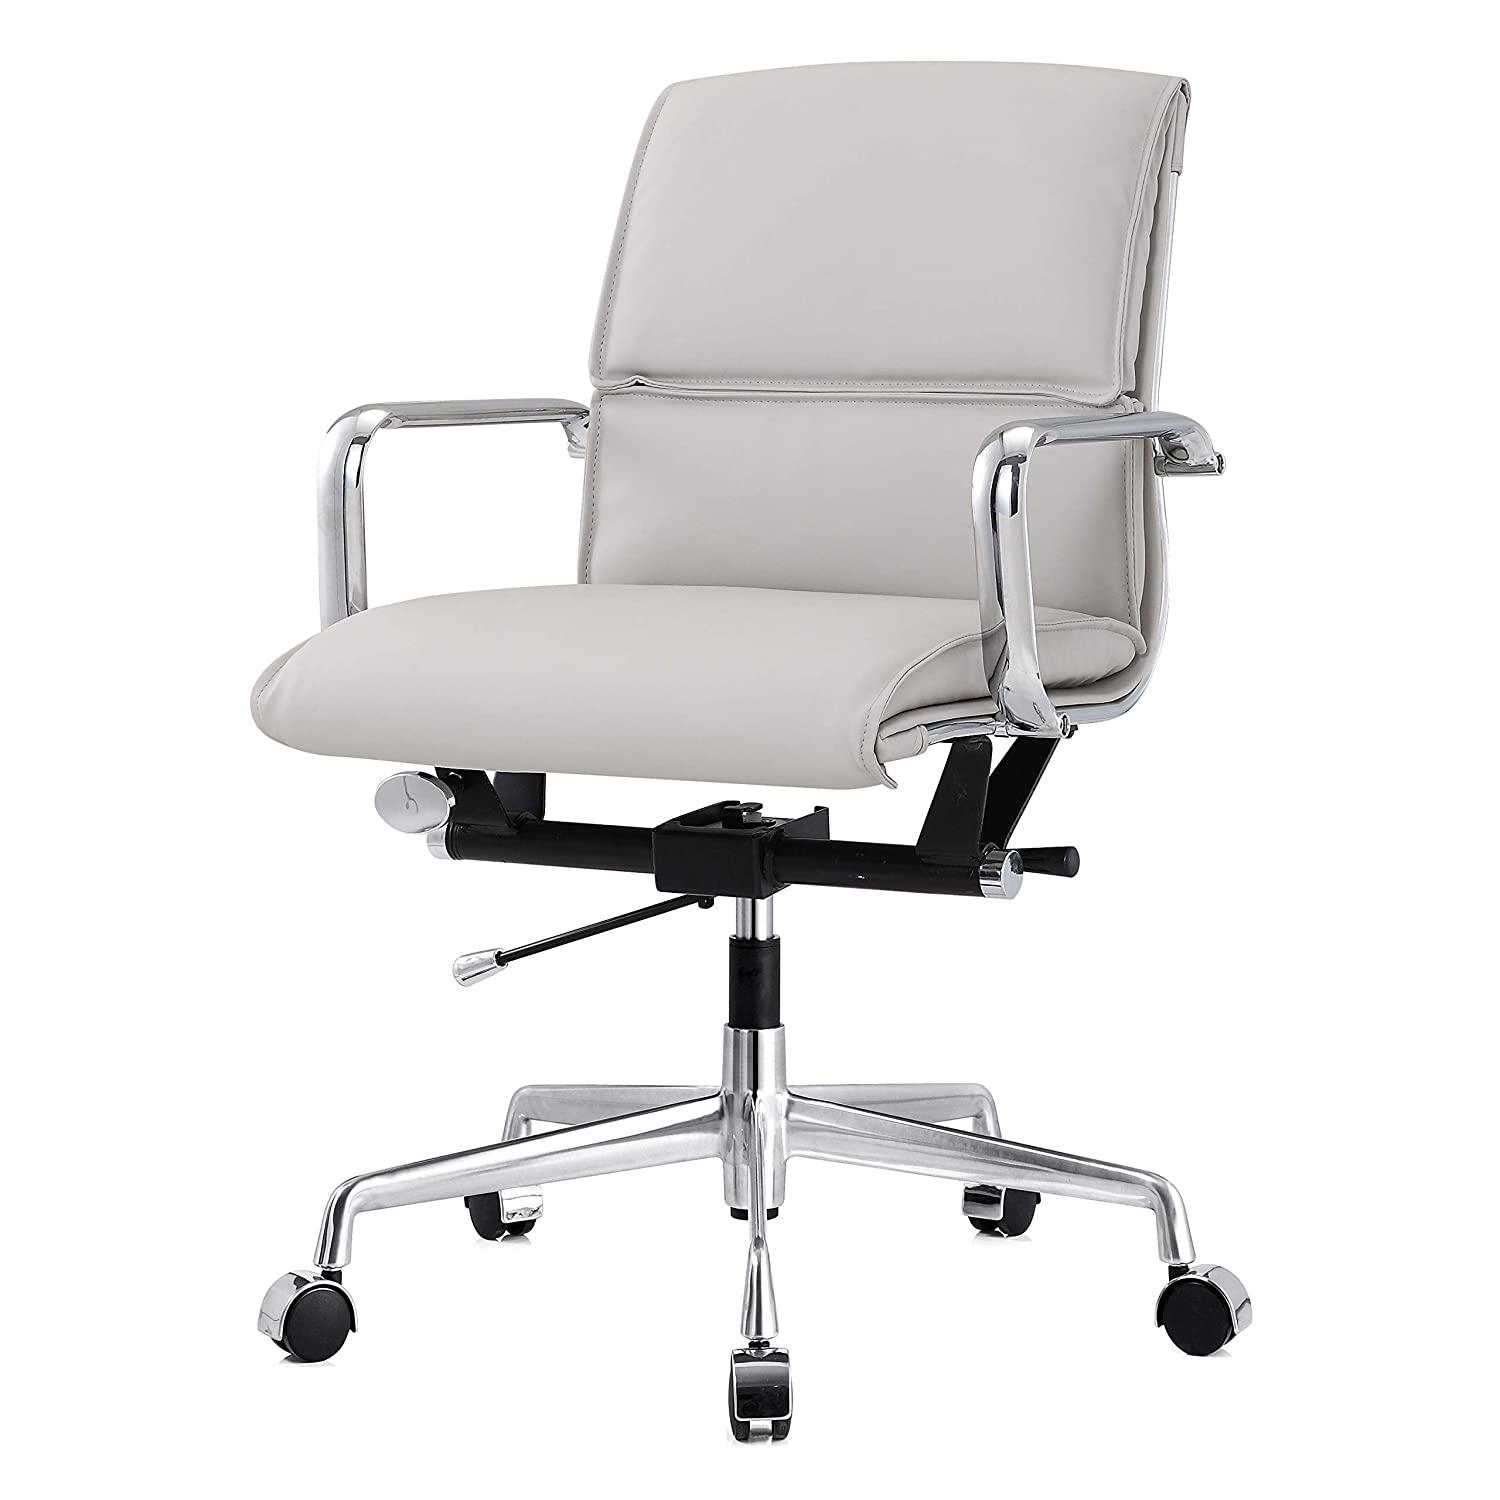 One Size MEELANO 330-GD-BLK Office Chair Gold//Black